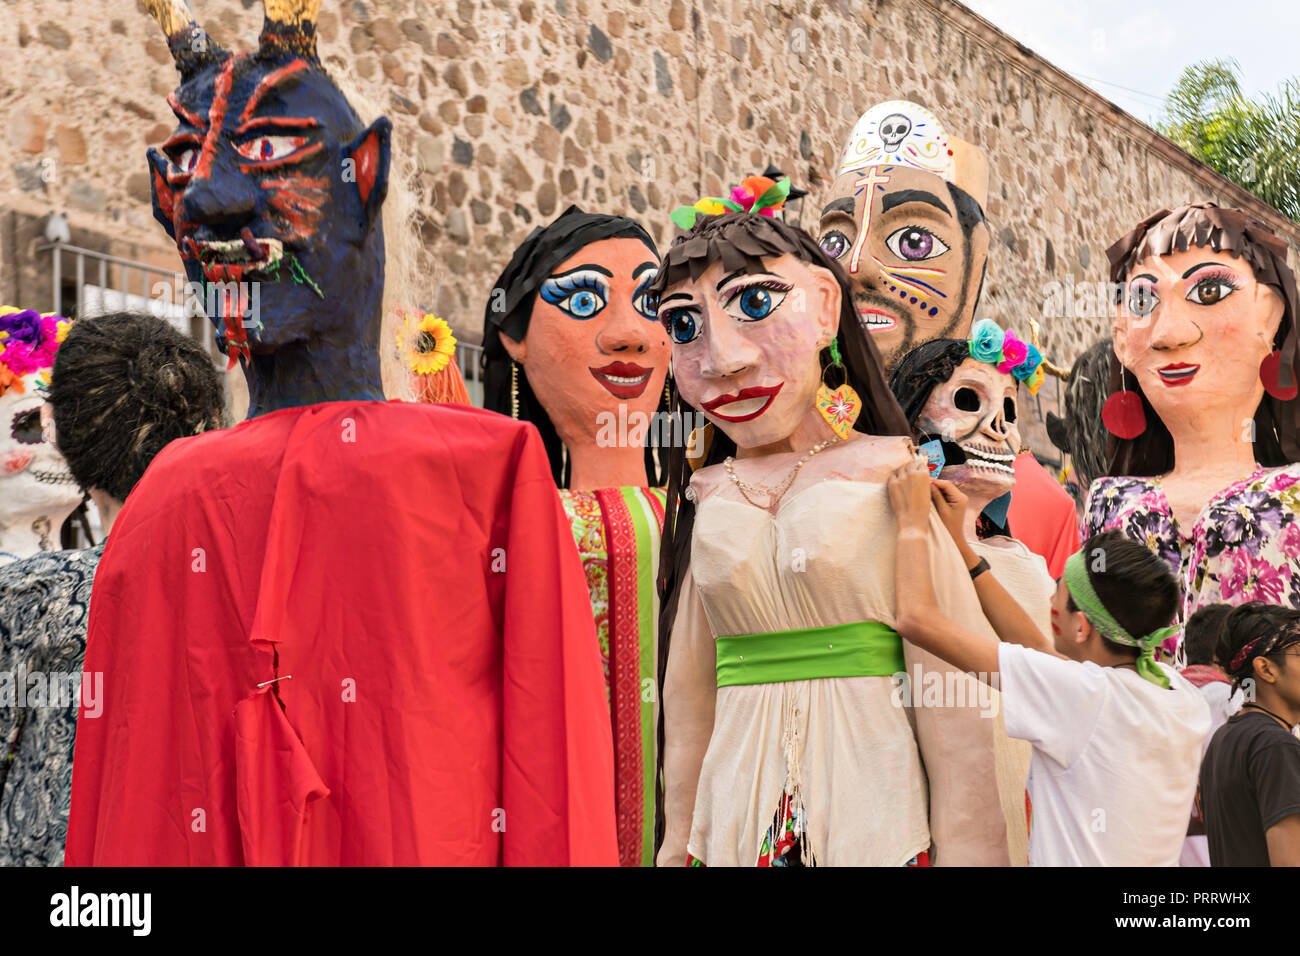 Giant paper-mache puppets called Mojigangas prepare to join in the annual parade celebrating the cities patron saint during the Feast of Saint Michael September 30, 2018 in San Miguel de Allende, Mexico. The festival is a four-day long event with processions, parades and a late night fireworks battle. - Stock Image